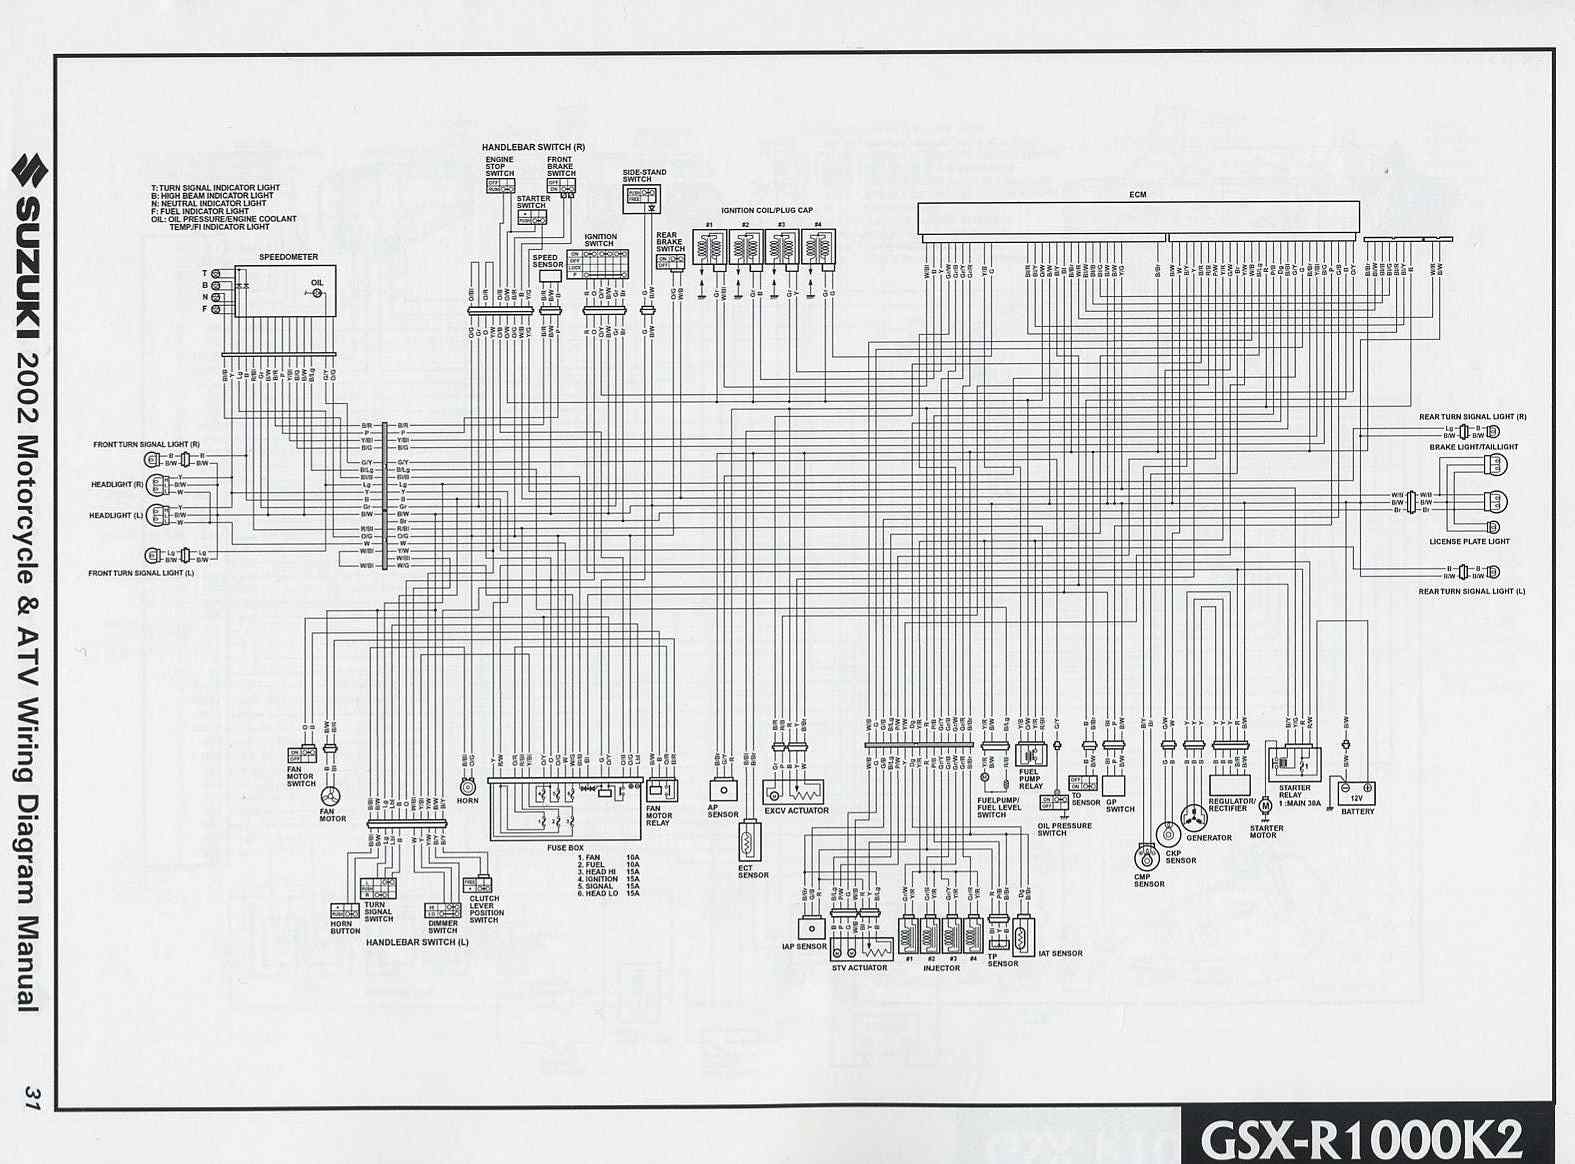 Suzuki GSXR1000 K2 2002 Motorcycle Wiring Diagram | All